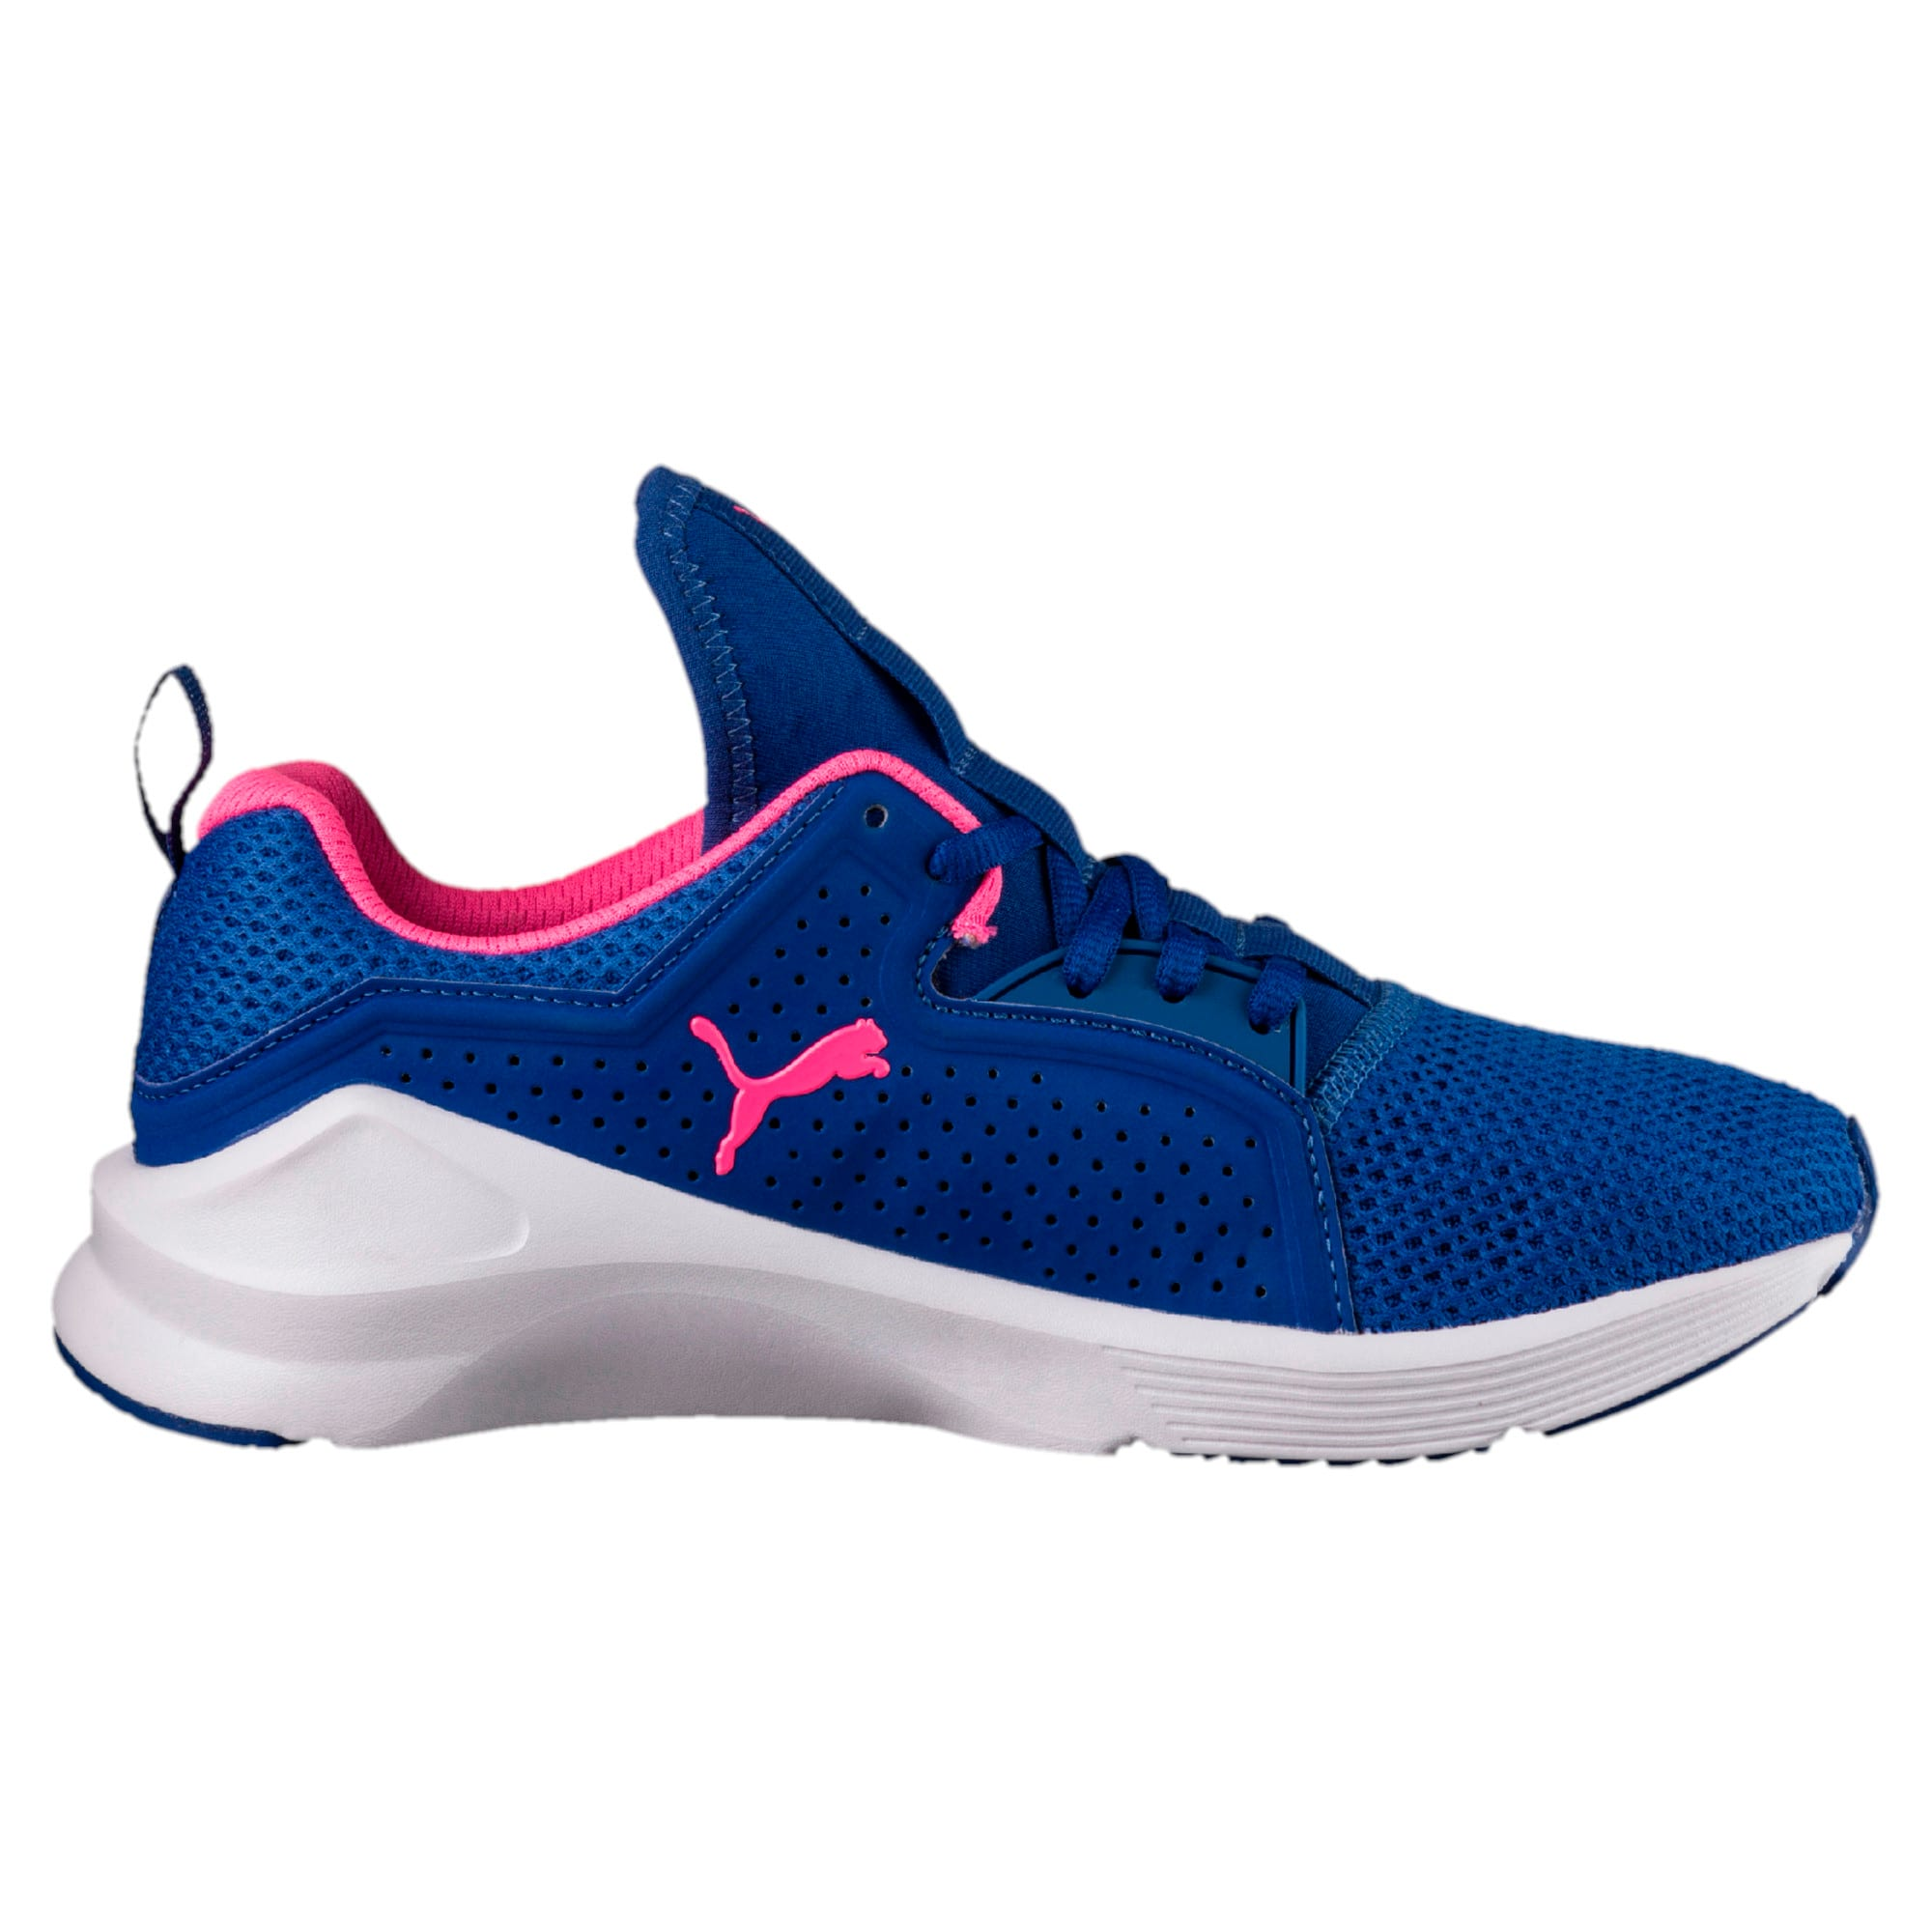 Thumbnail 5 of PUMA Fierce Lace Training Shoes, TRUE BLUE-KNOCKOUT PINK, medium-IND